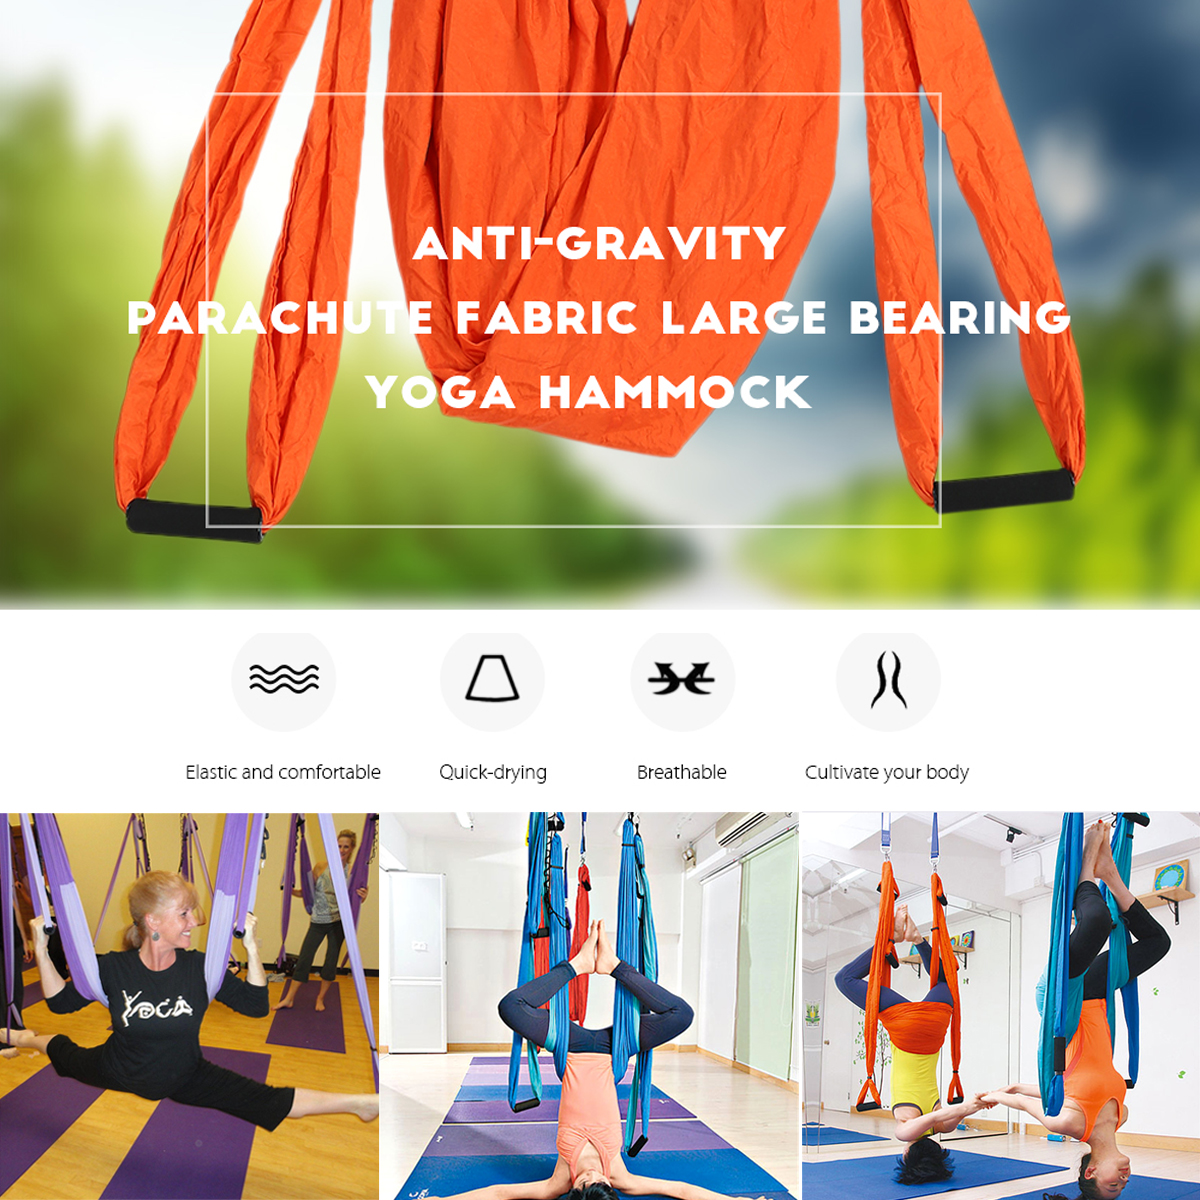 Colors Anti Gravity Yoga Flying Hammock Inversion Swing Inversion Trapeze Aerial Sling Aerial Anti-tearing Soft and Comfortable relefree 14 colors aerial flying anti gravity yoga hammock swing yoga body building workout fitness inversion tool freedrop